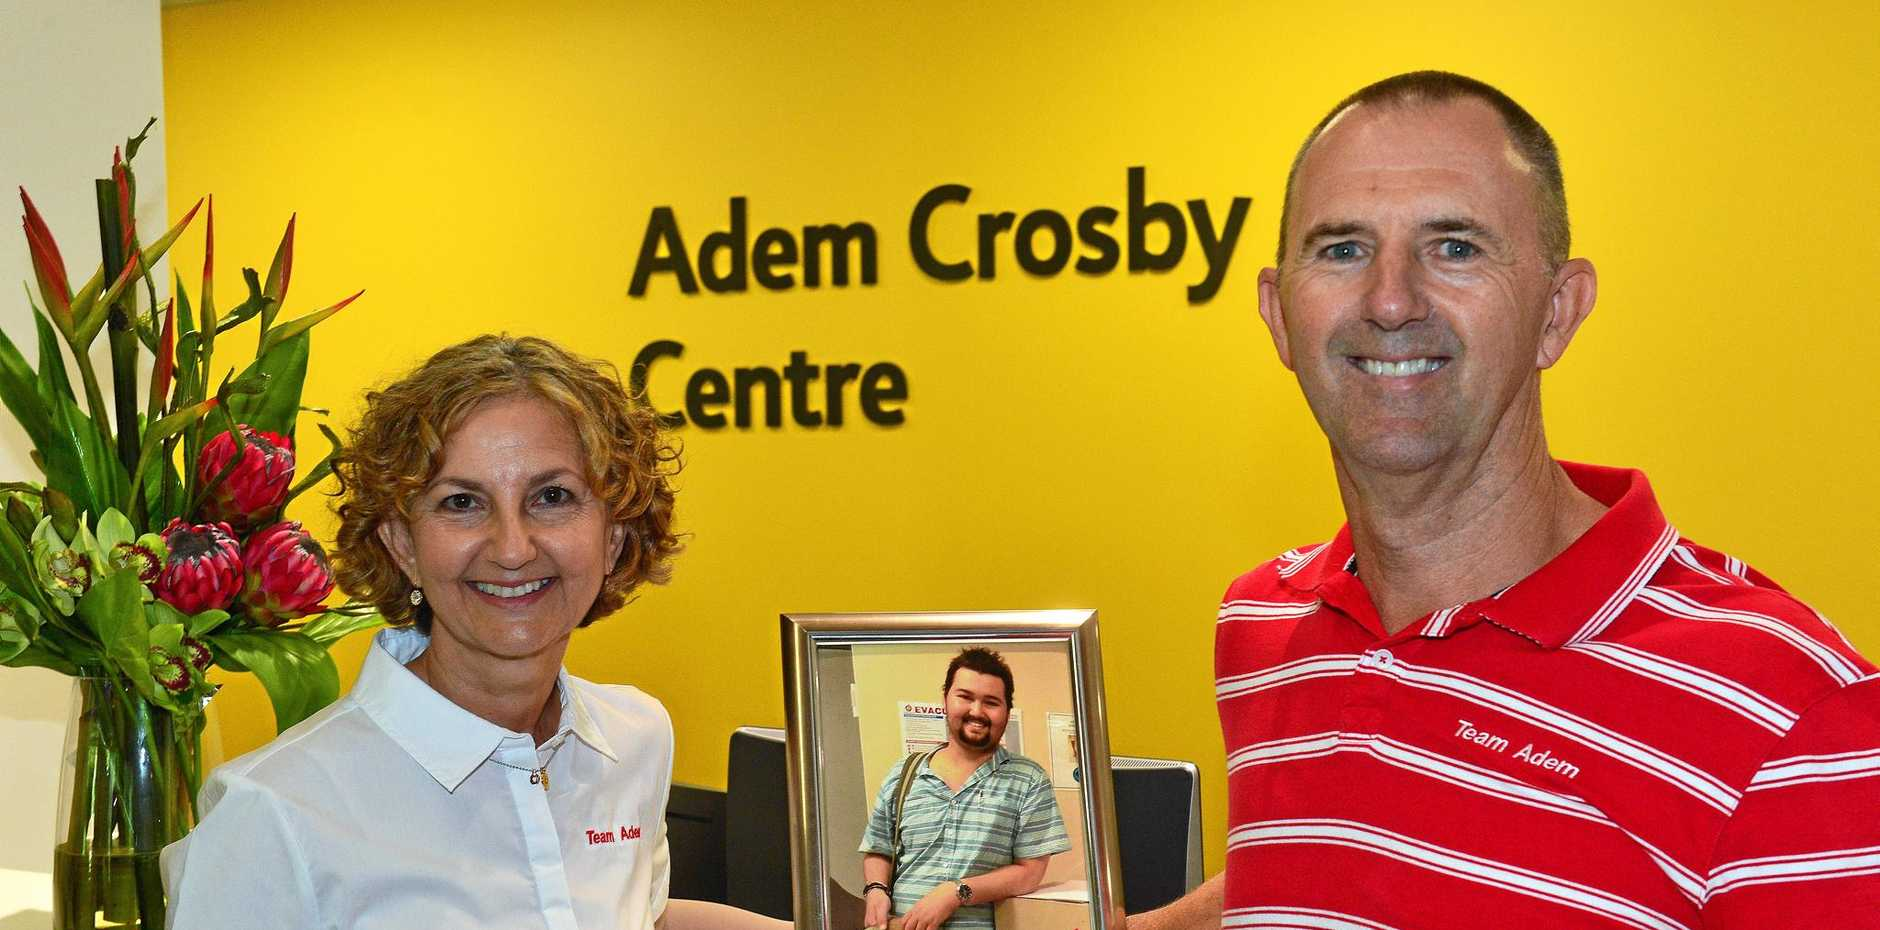 Lu and Brent Crosby at the Adem Crosby Centre.